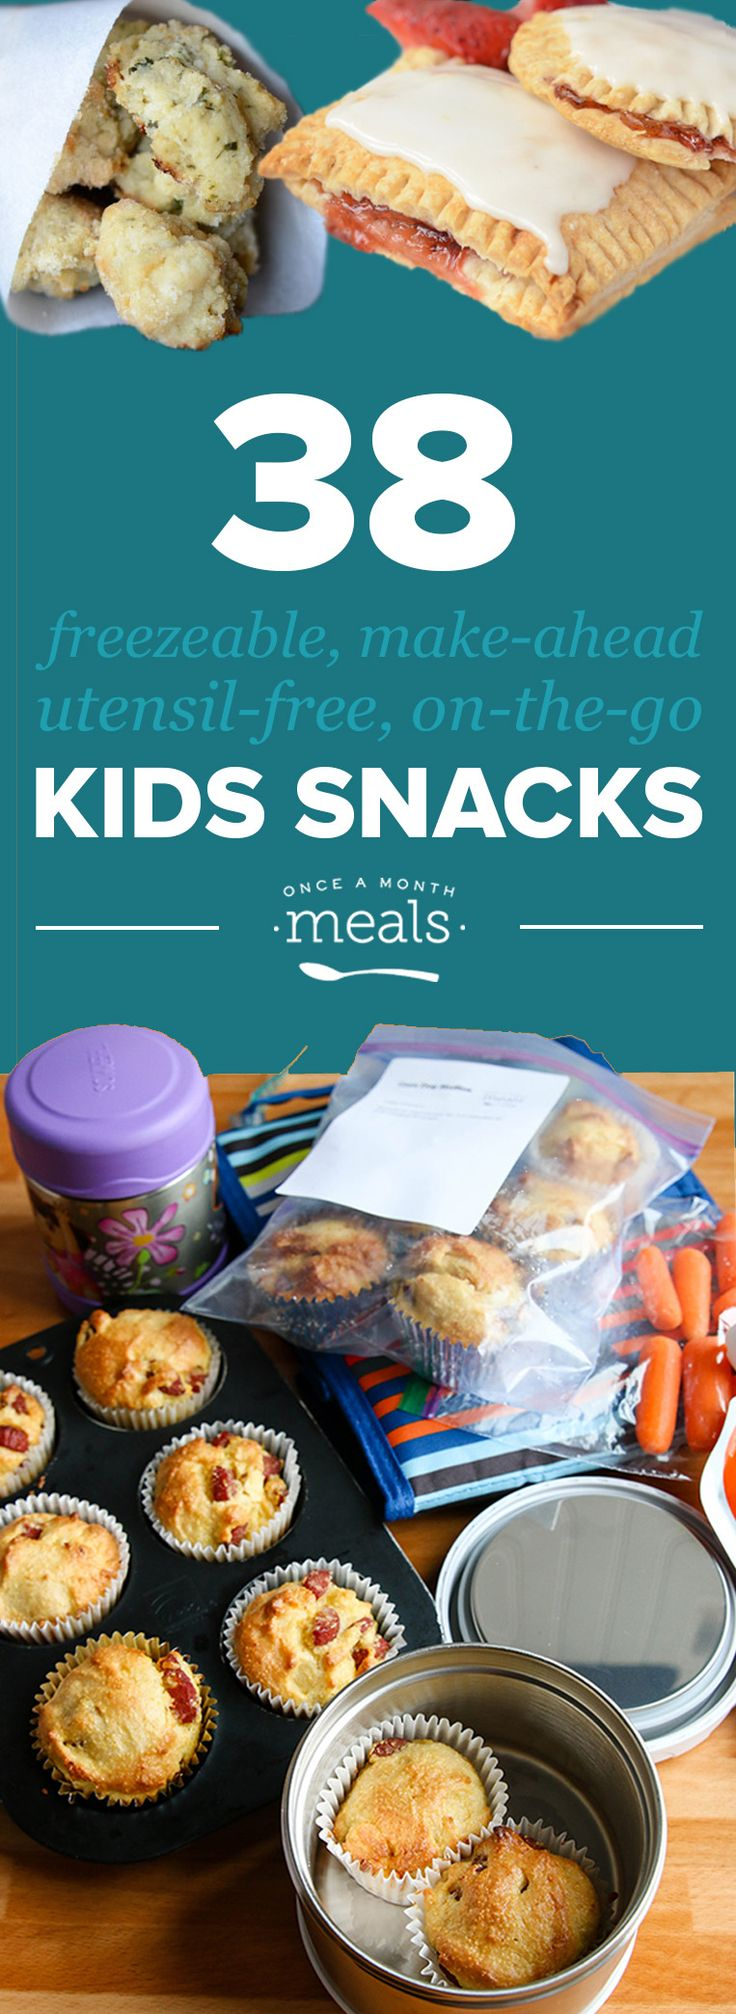 Save Your Summer with these Freezer Friendly, On-the-Go Kids Snacks! In need of snacks to take with you while you and your family are on-the-go this summer? Look no further than this freezer AND kid friendly list! Whether you are